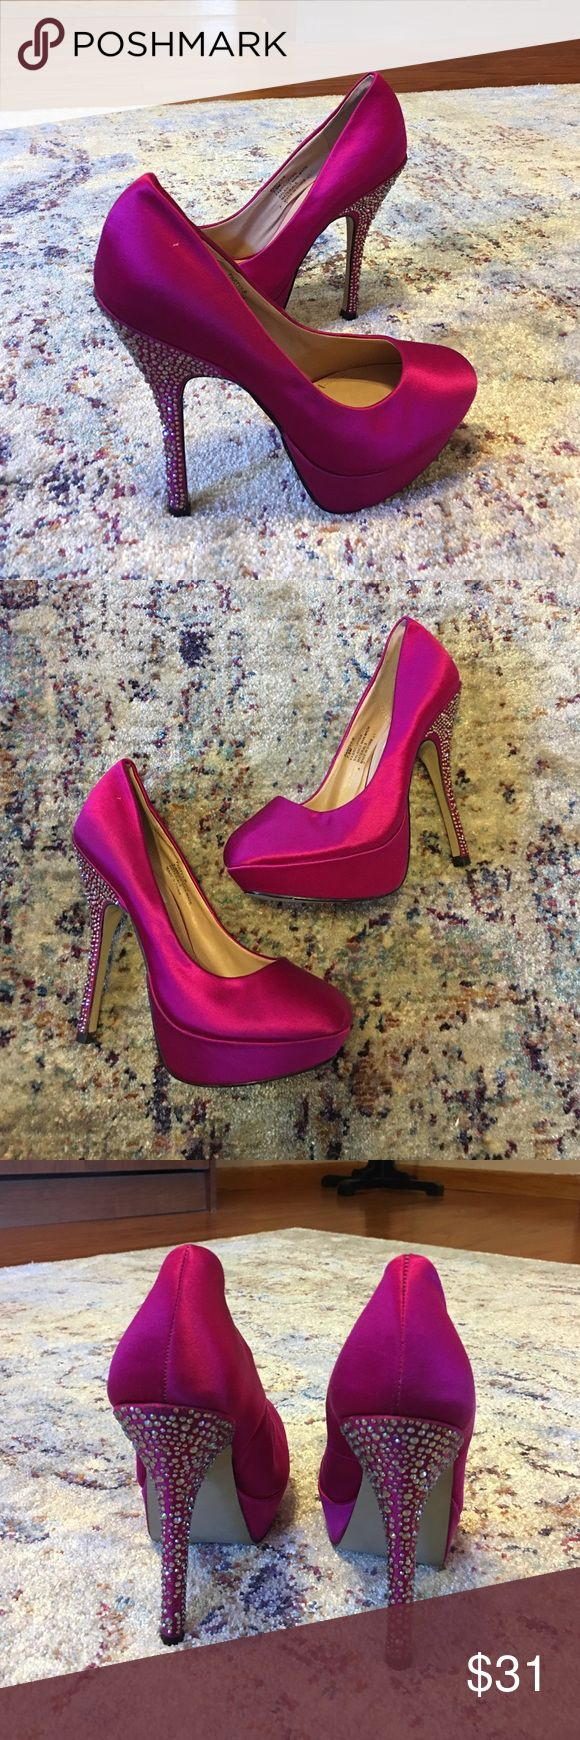 """Steve Madden Partyy-R  Satin Rhinestone Platforms Steve Madden Partyy-R  Satin Rhinestone Platforms. Size 7.5. Fabric upper. Man made balance. Rhinestone coated 5"""" stiletto heel. 1"""" platform. Light use. Excellent overall condition. 8 tiny rhinestones missing in total. You will literally have to study the heel up close to find where they were located. Unnoticeable. Incredible party shoe! Steve Madden Shoes Platforms"""